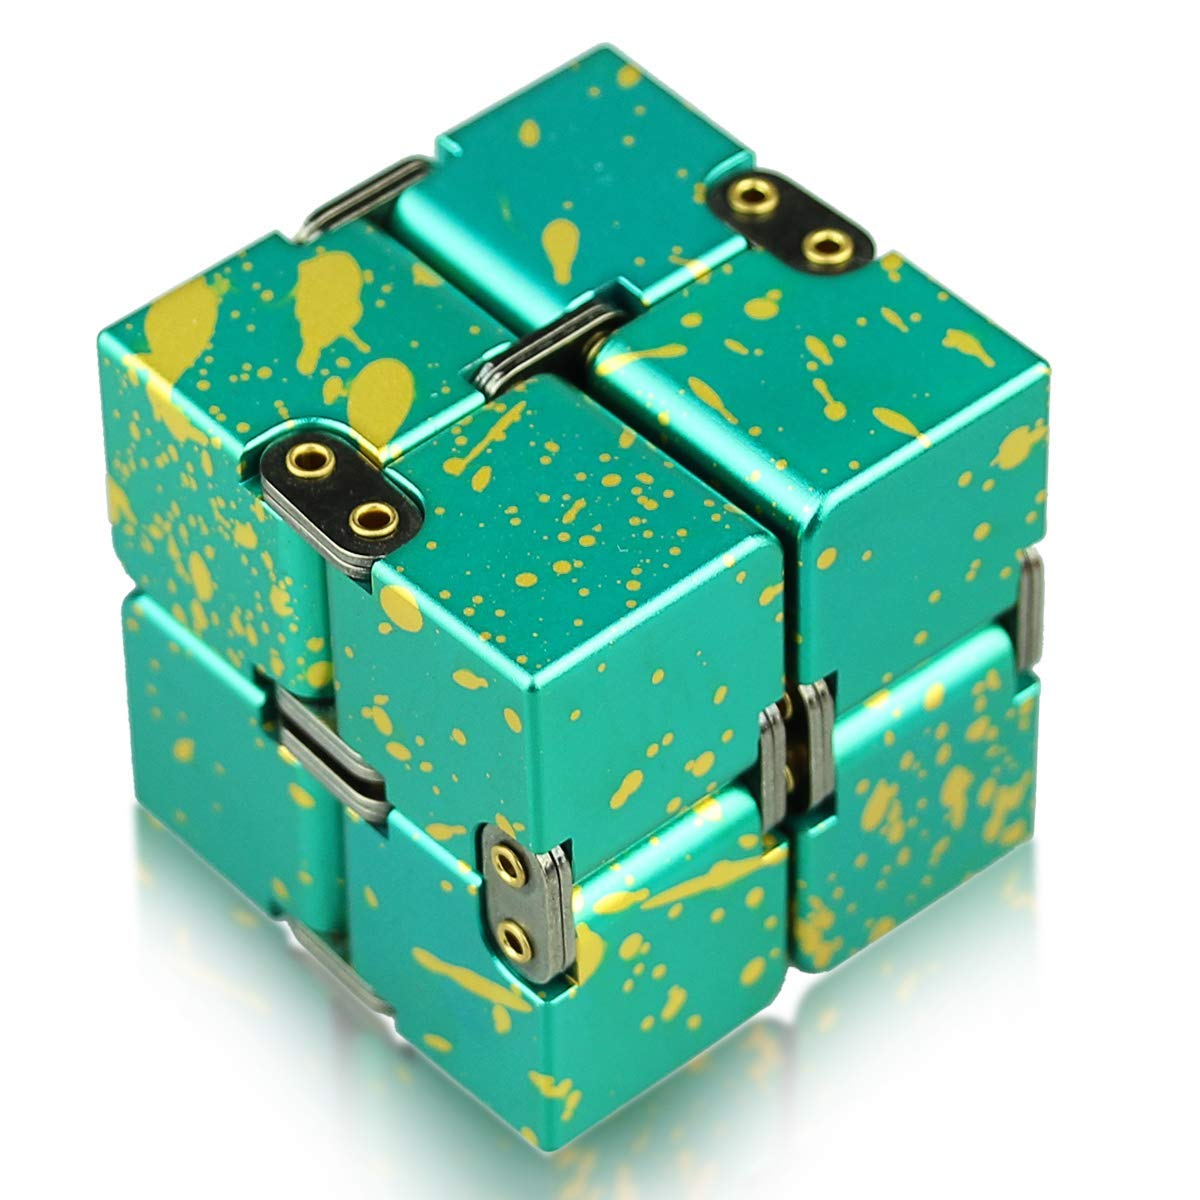 HELESIN Infinity Cube Fidget Toys Relaxation Office Stress Reducers for ADD, ADHD, Anxiety, Autism Adult & Kids, Aluminium Alloy, Camouflage by HELESIN (Image #1)